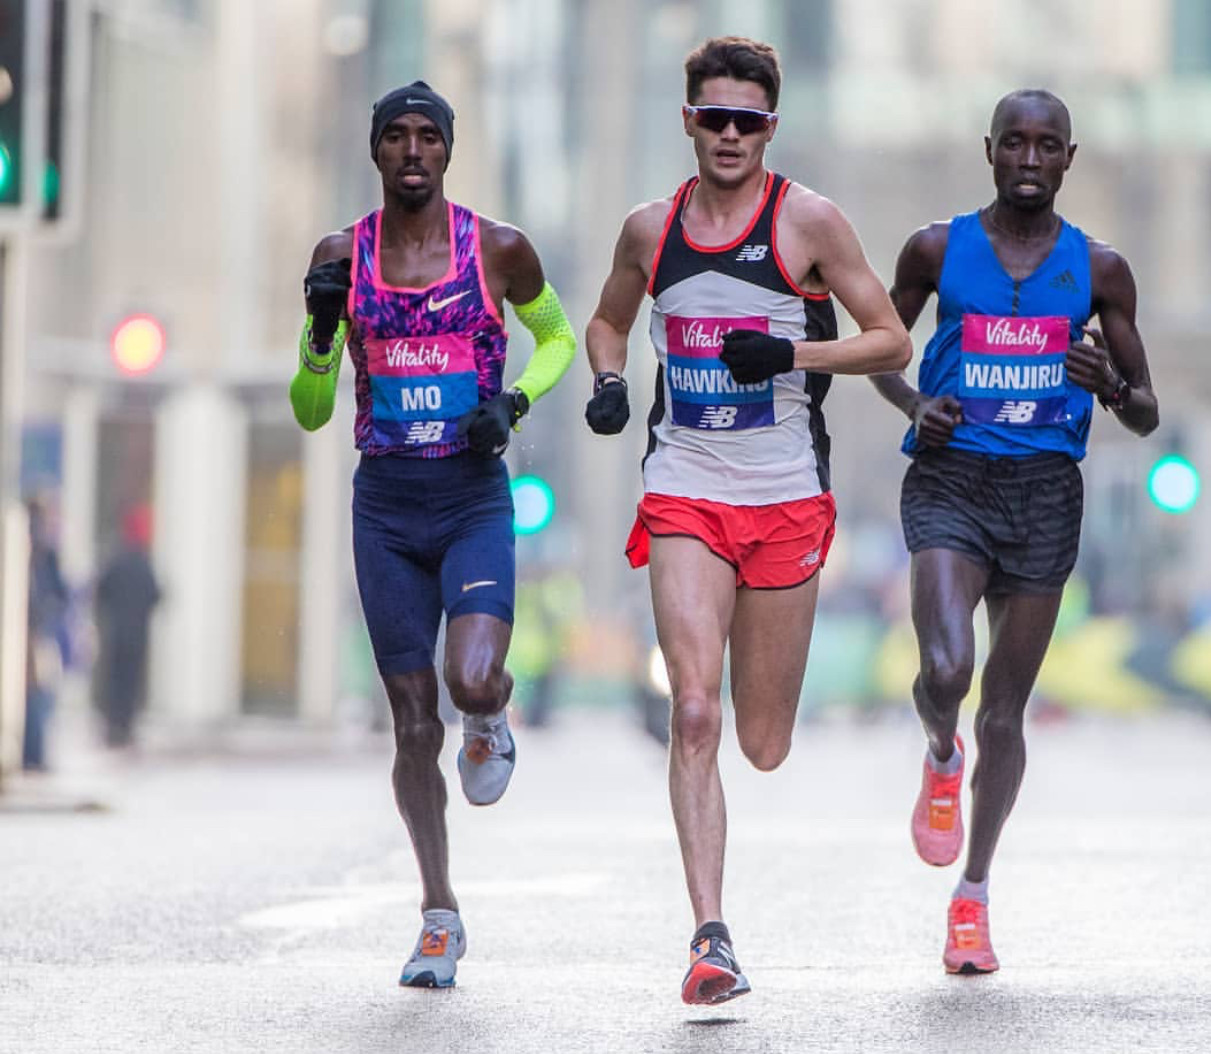 Mo Farah almost did not run the London Big Half on Sunday due to bad weather